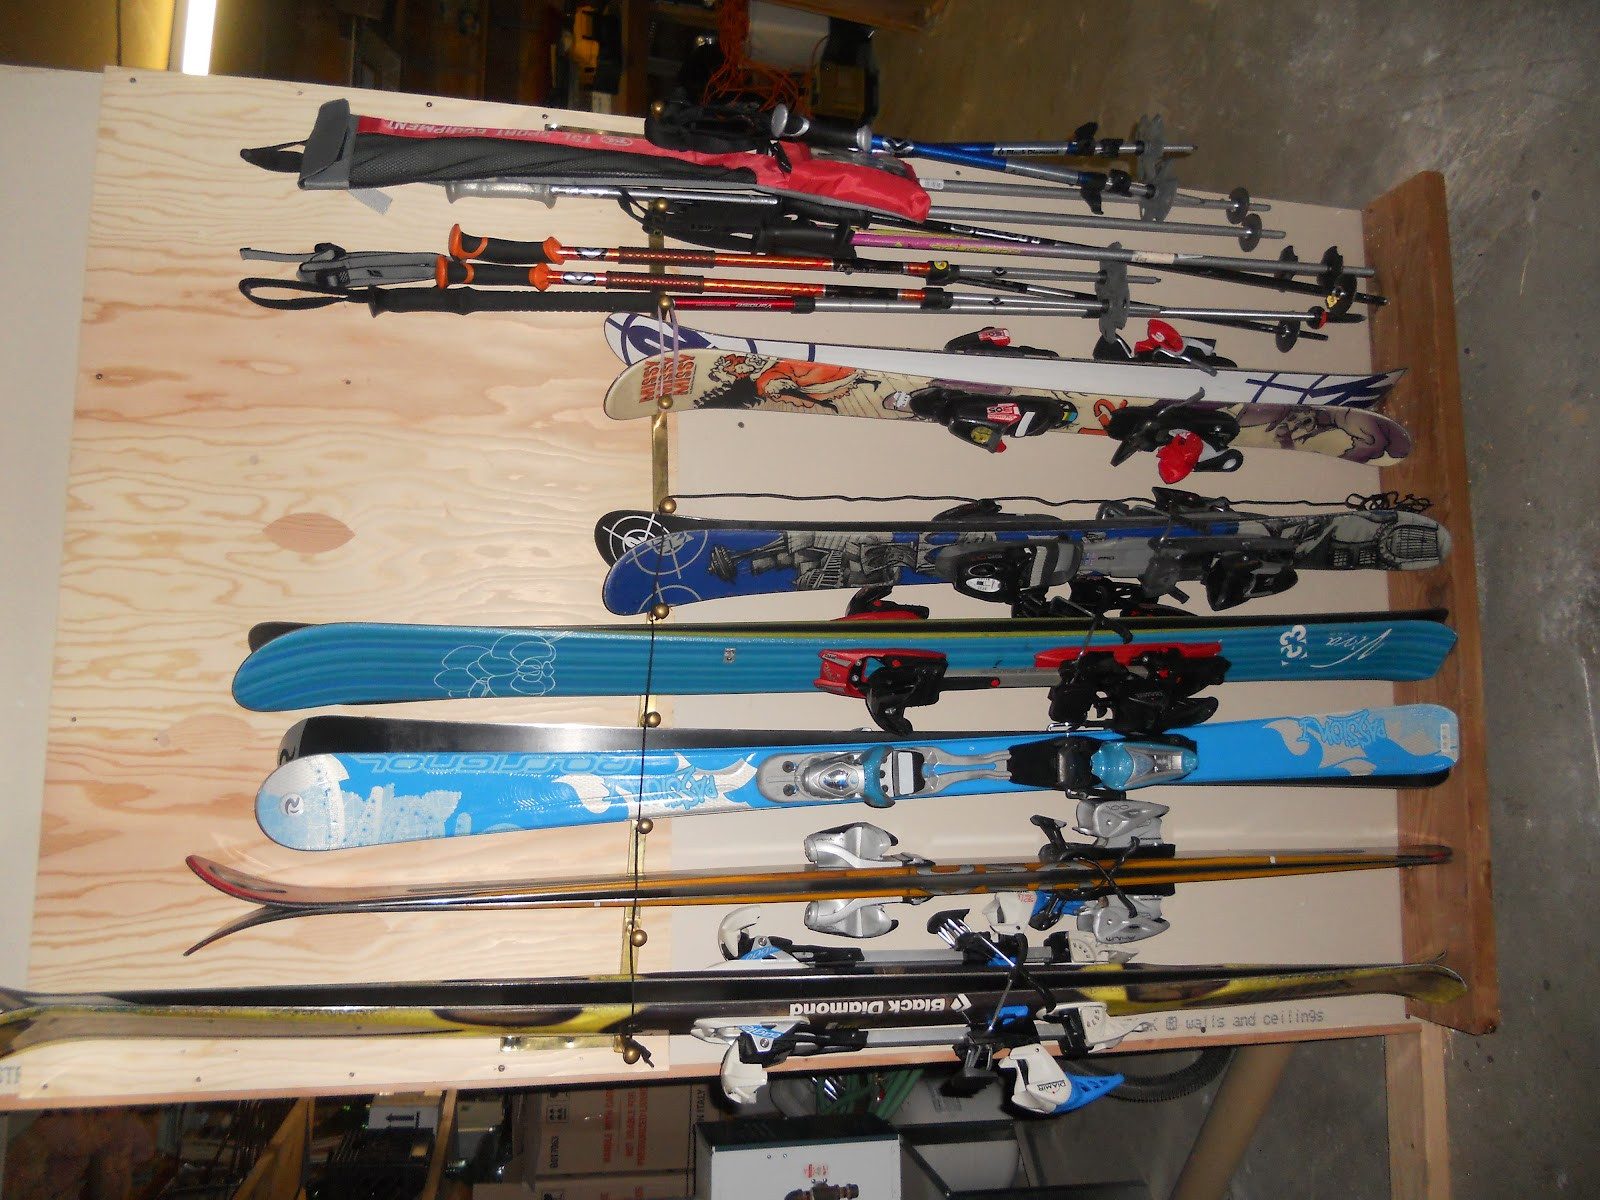 Best ideas about DIY Ski Rack . Save or Pin Daily Dose of Douglet POS DIY Ski Rack Now.